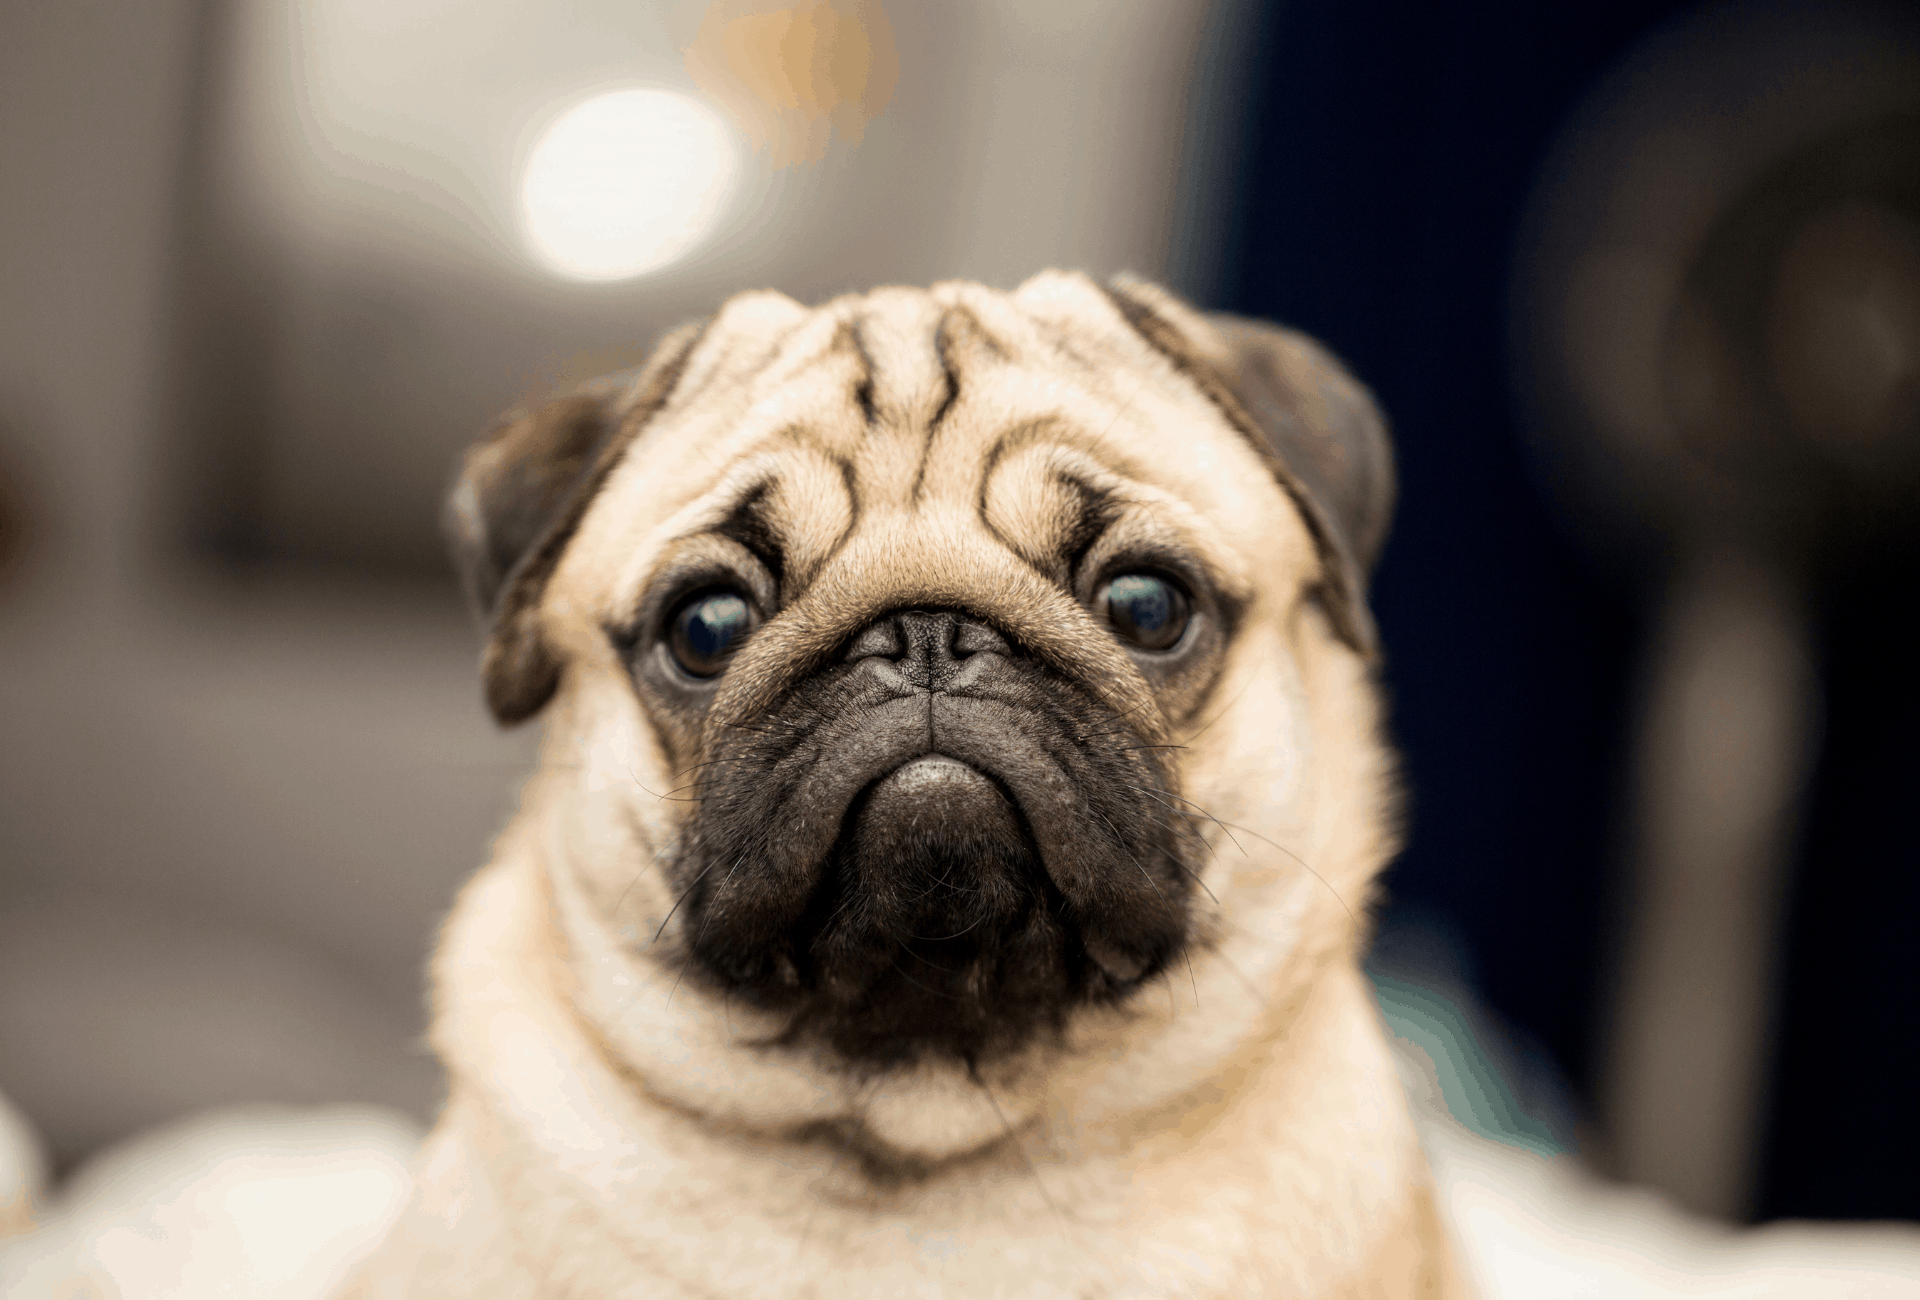 pug looking into camera